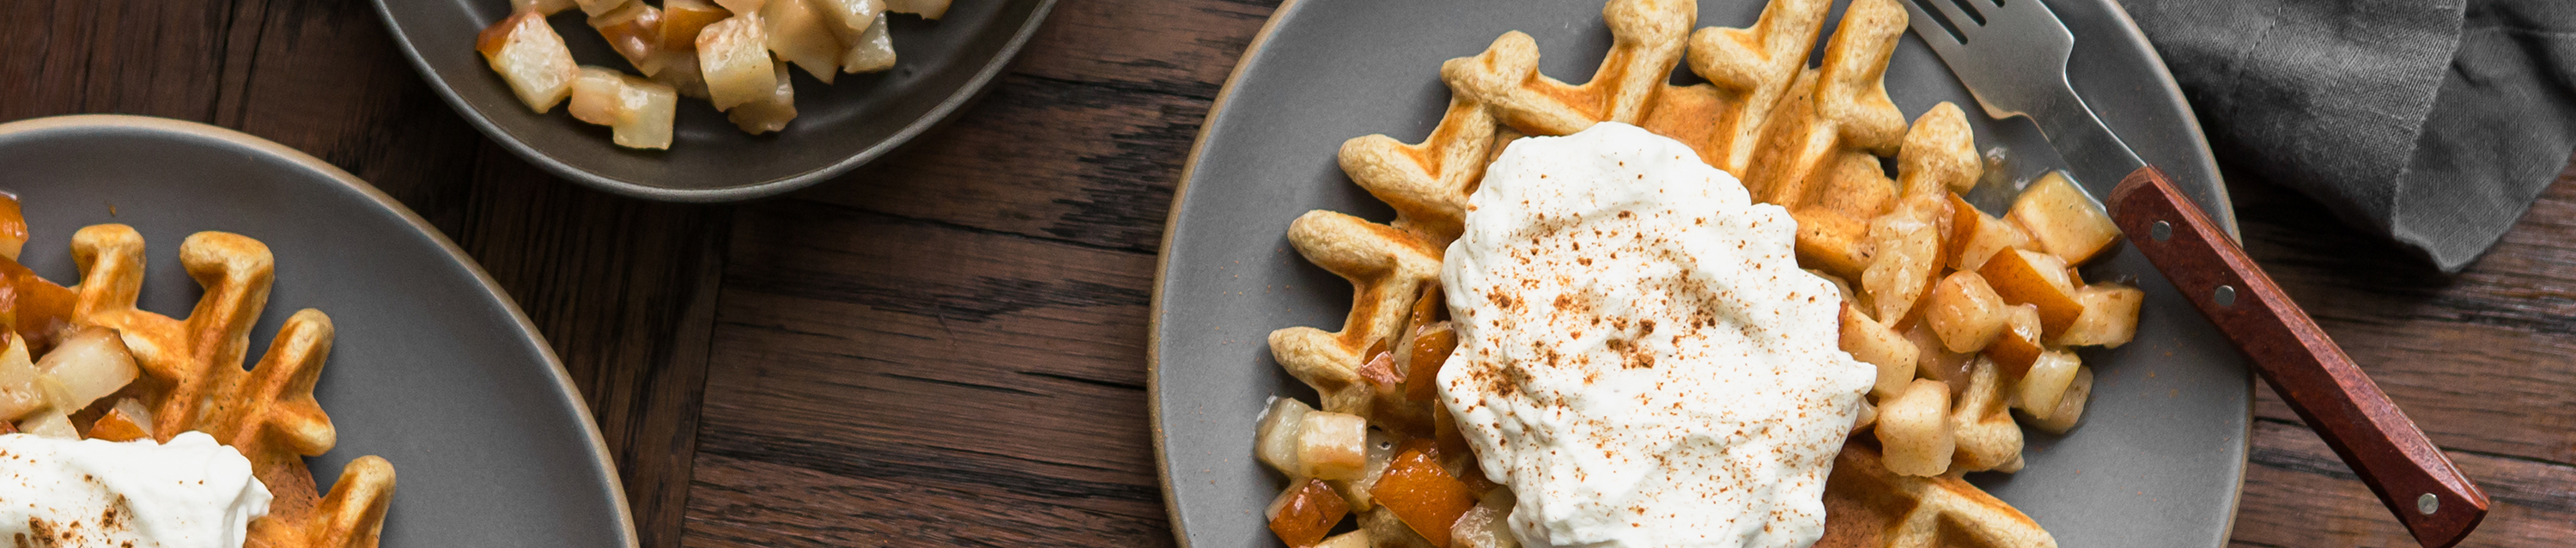 Multigrain Waffles with Cardamom Bosc Pears & Whipped Cream